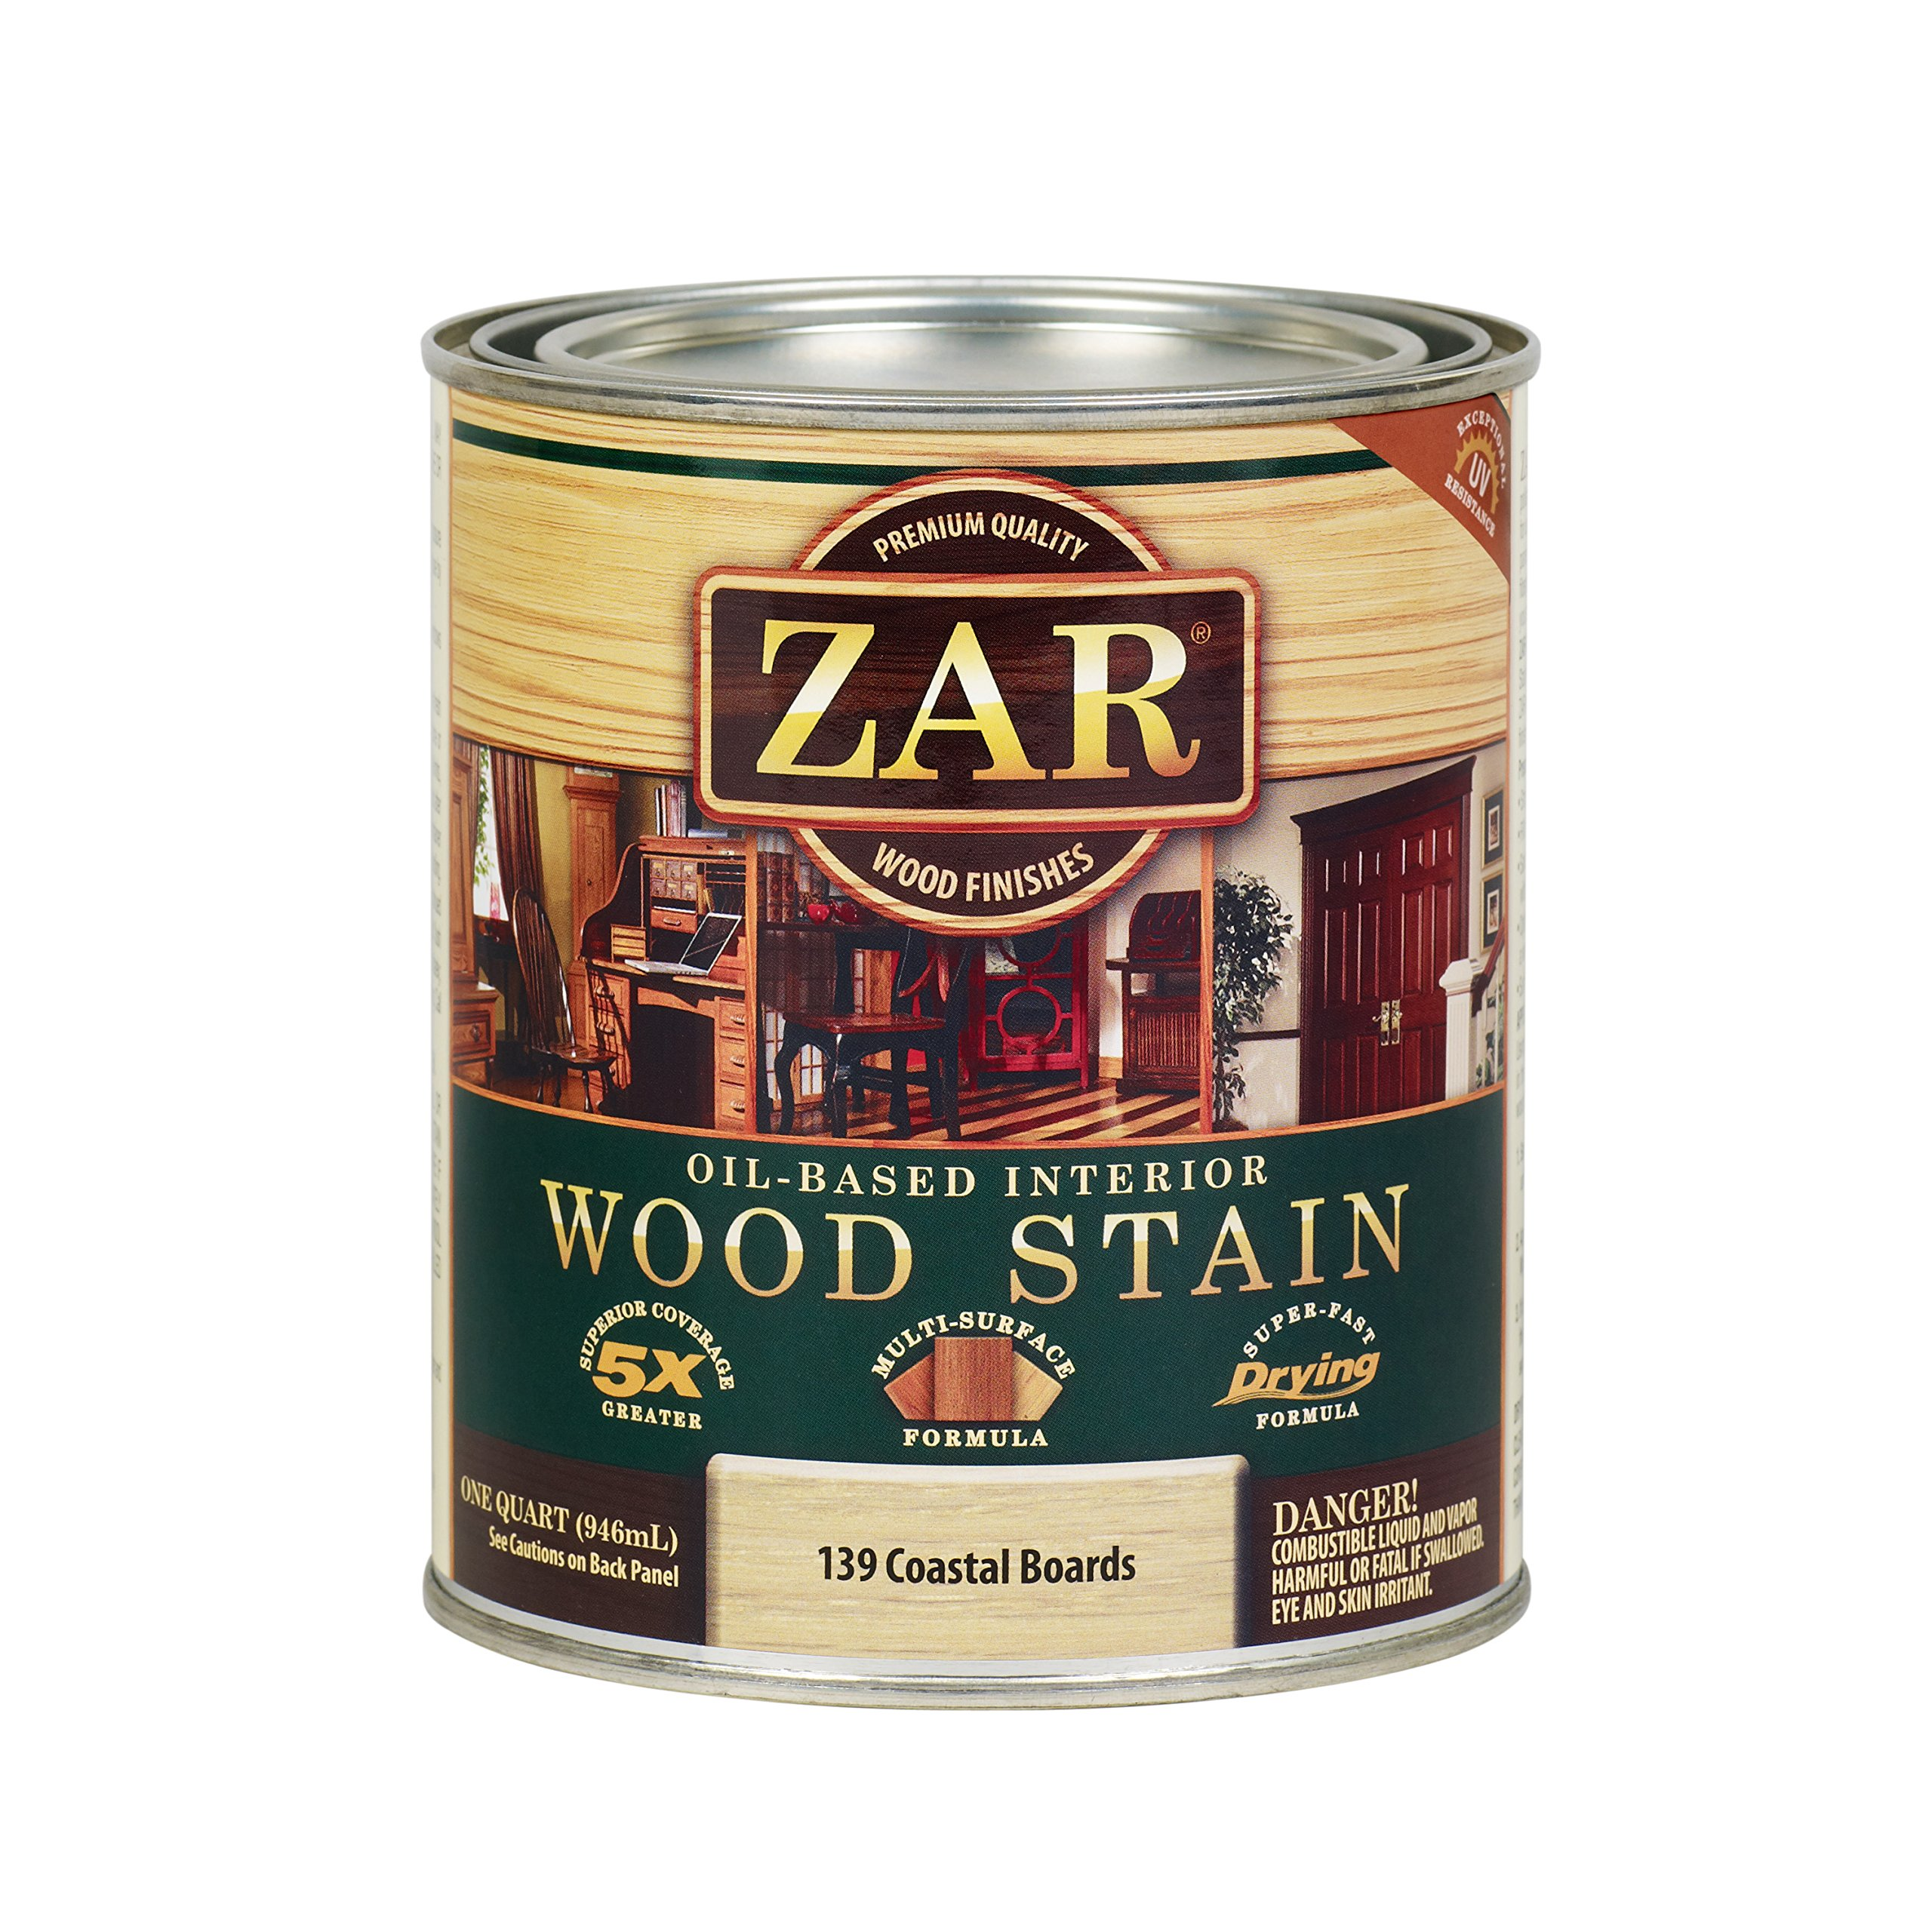 ZAR 13912 Country Coastal Boards Wood Stain, White